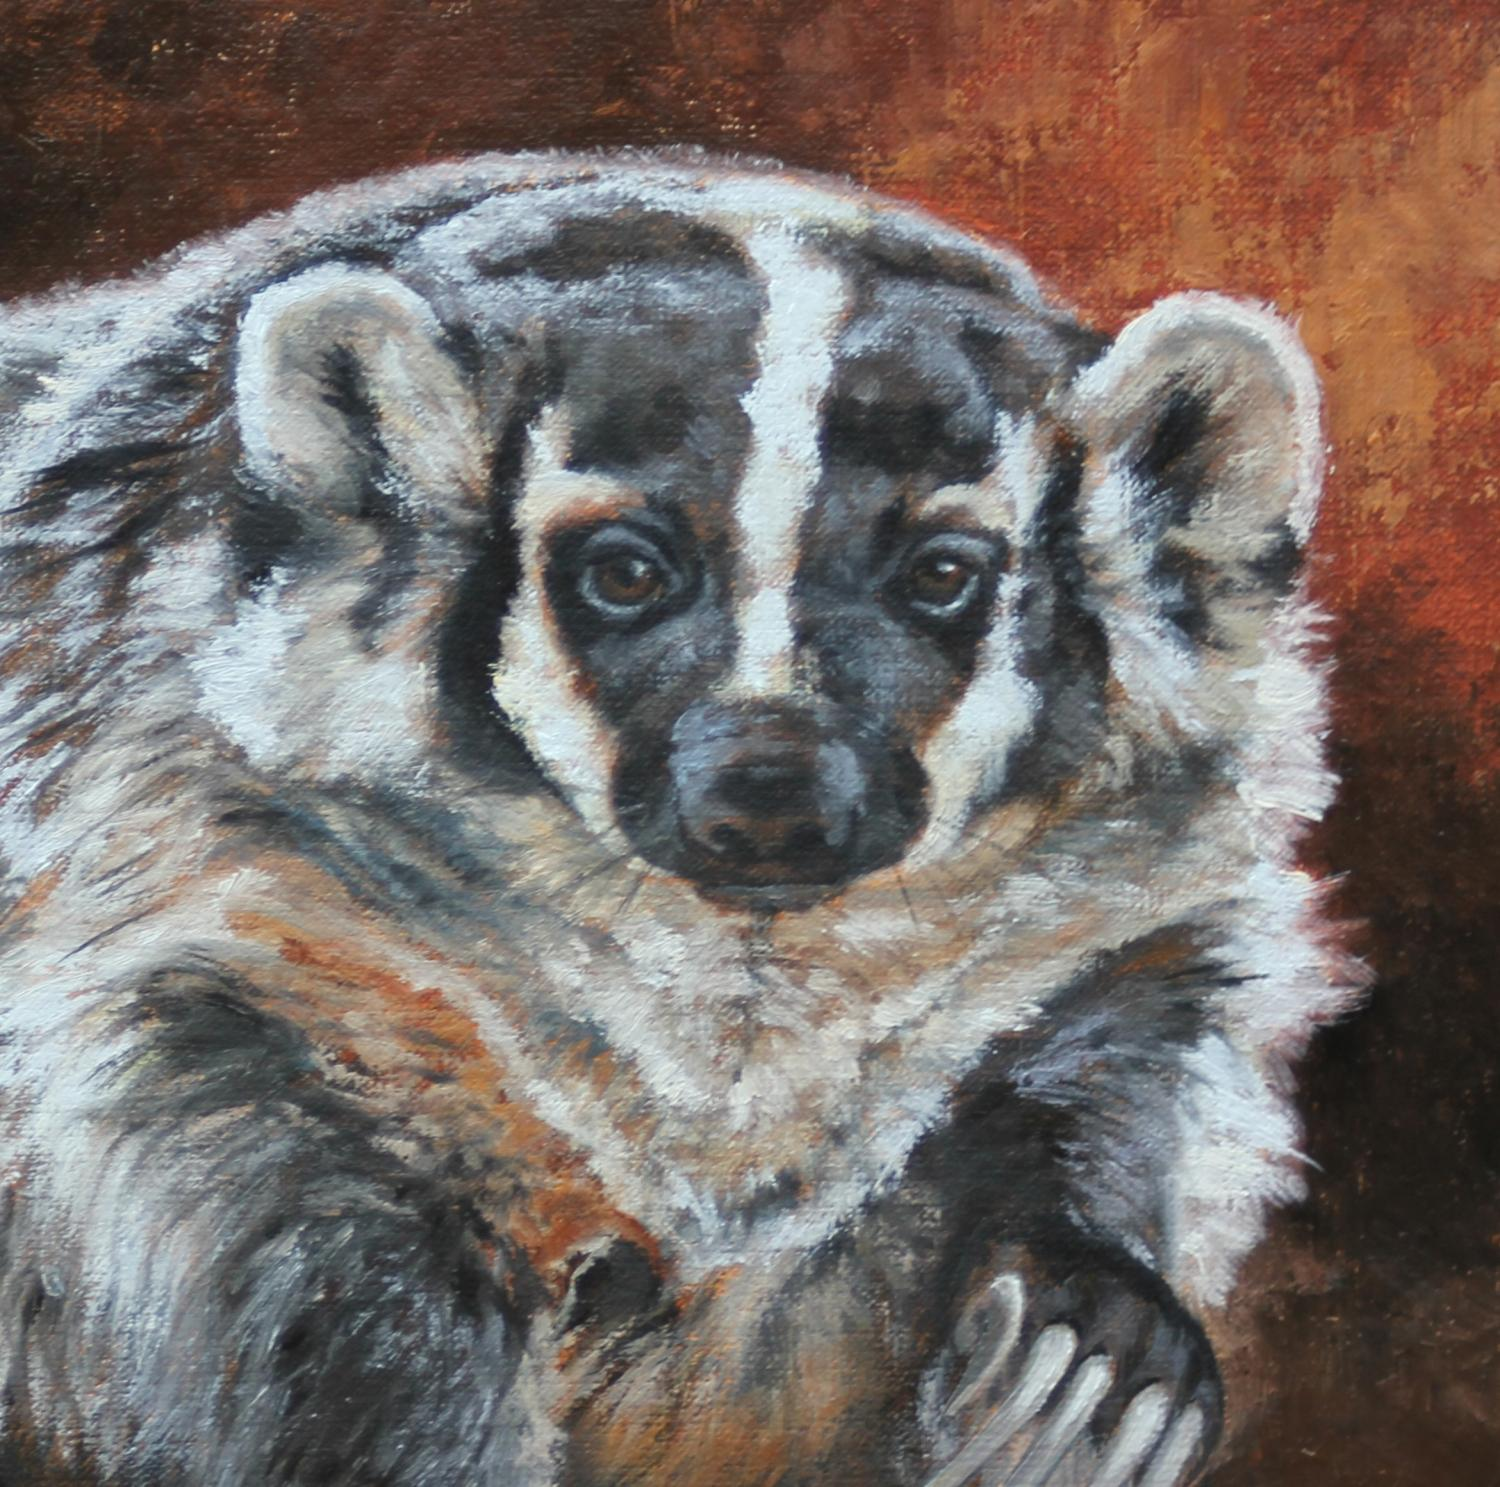 Badger, Badger Painting, Badger artwork, western wildlife, western paintings, western wildlife paintings, Leslie Kirchner, leslie kirchner art